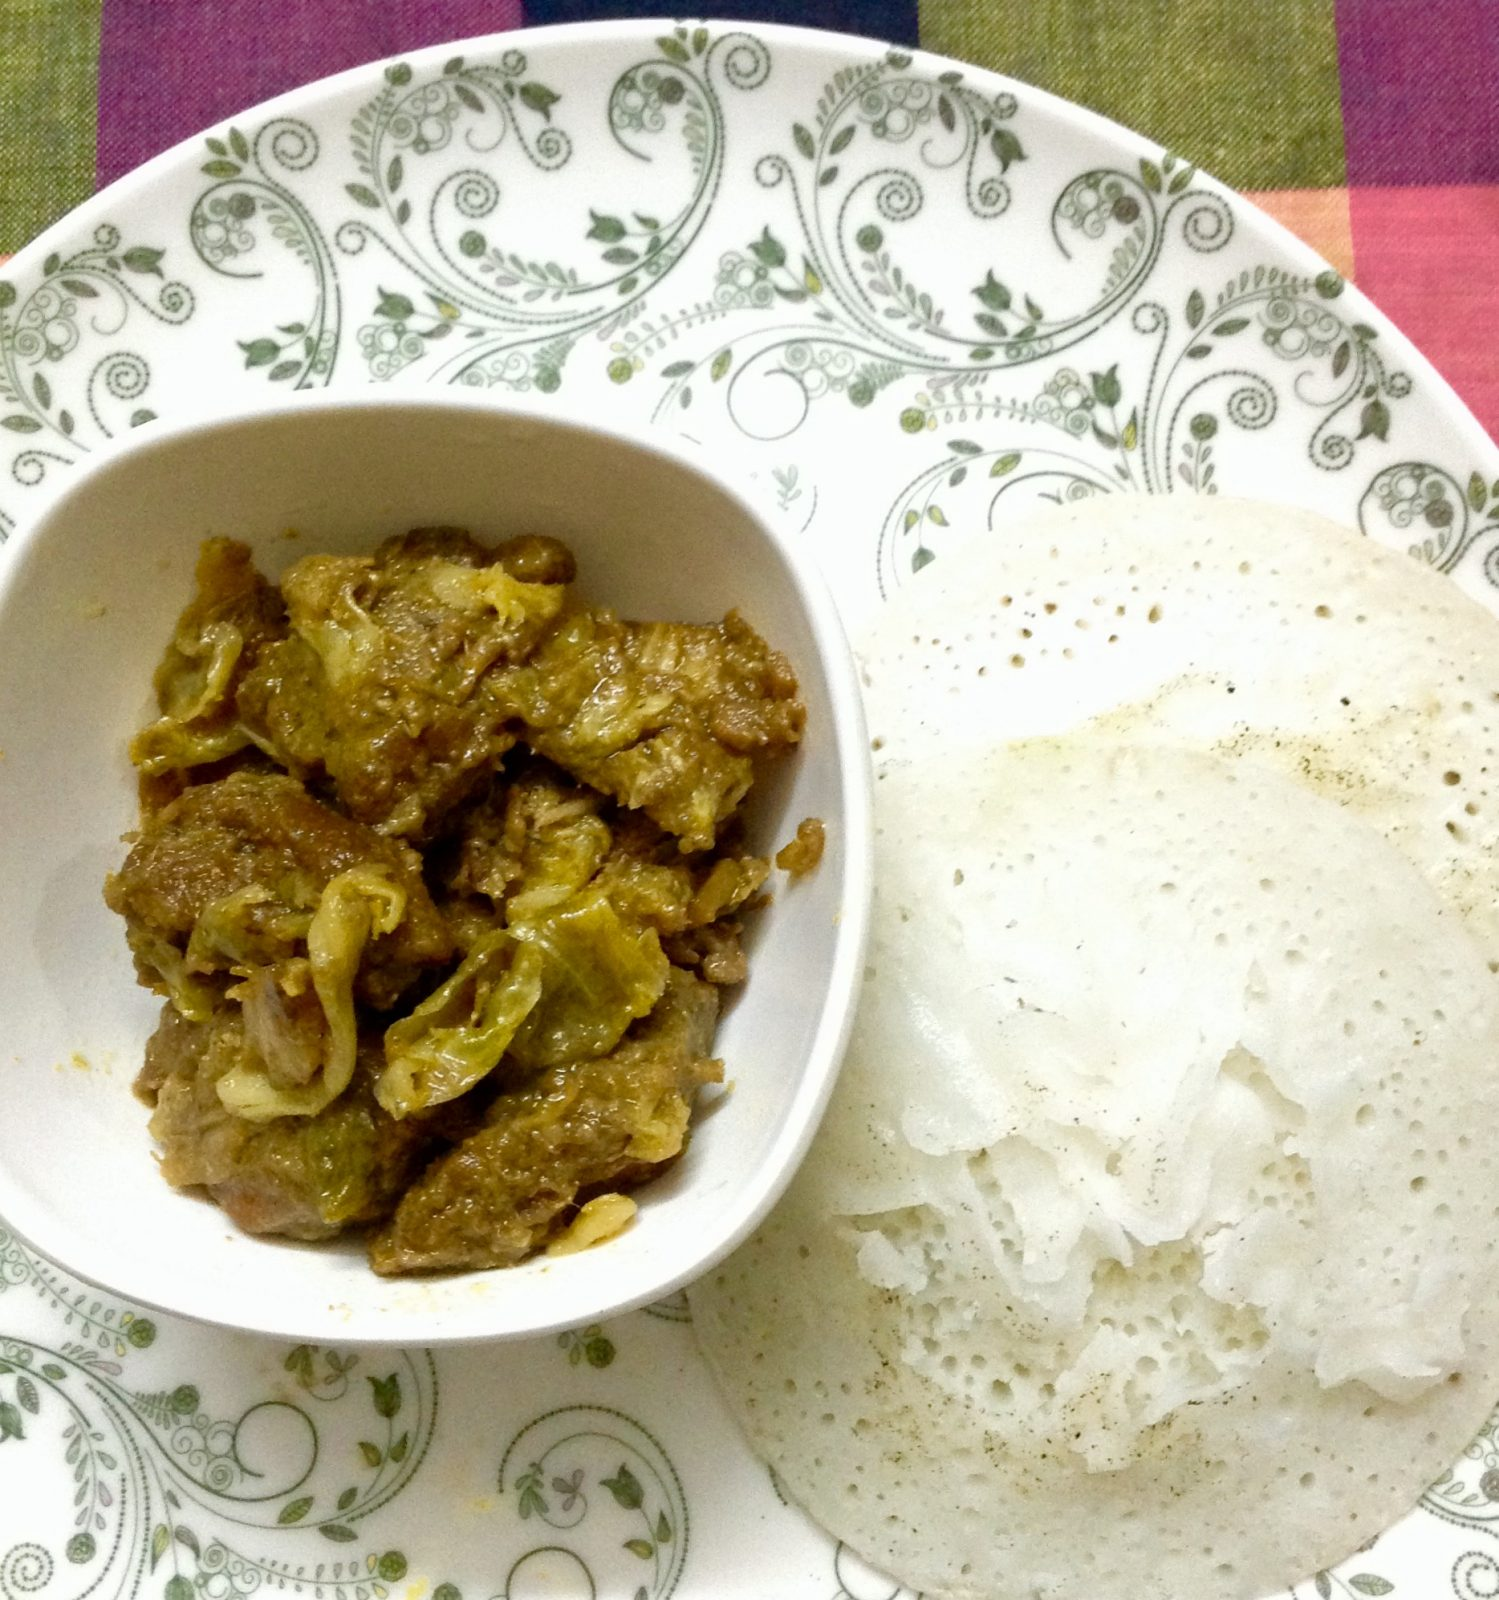 Chhit-ruti with Beef/Chicken from Shelley's Kitchen